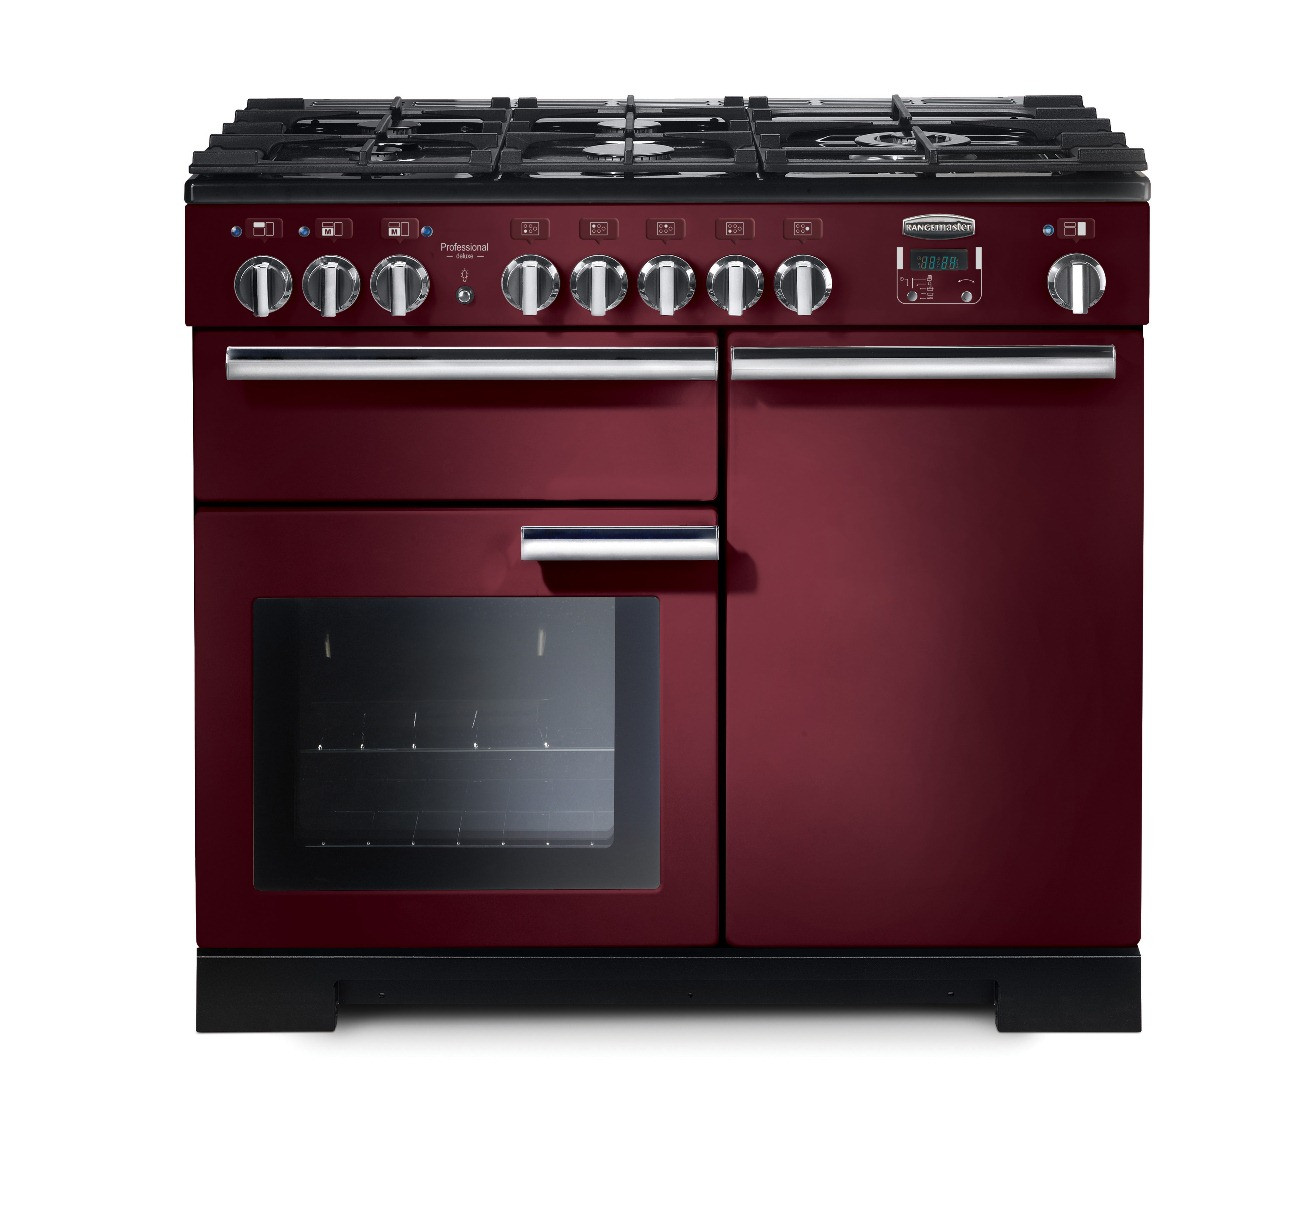 Rangemaster Pdl100dffcy Professional Deluxe 100 Dual Fuel